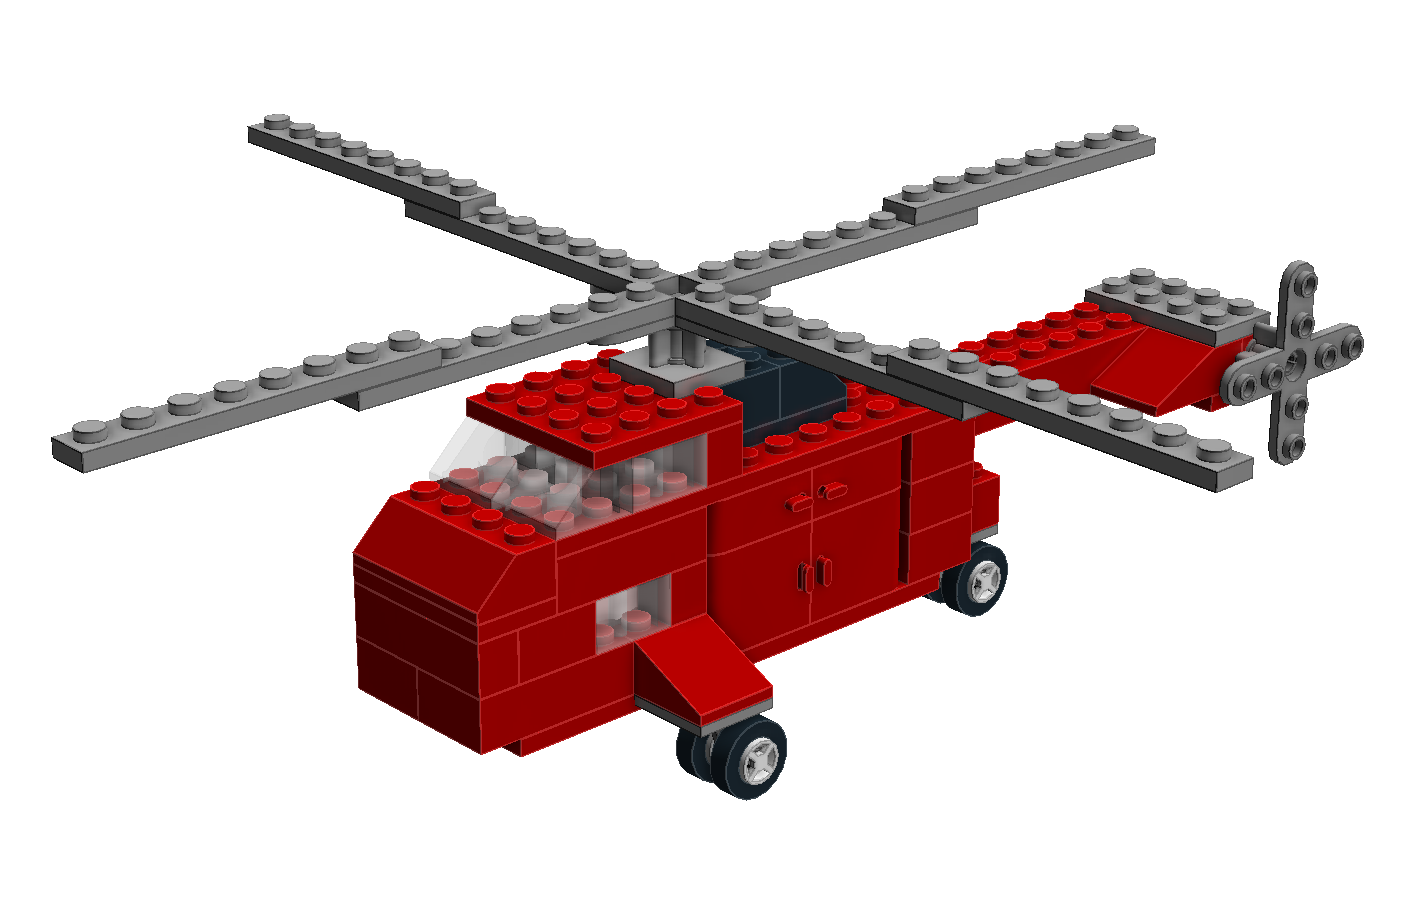 1974_helicopter_-_2001_remake.png